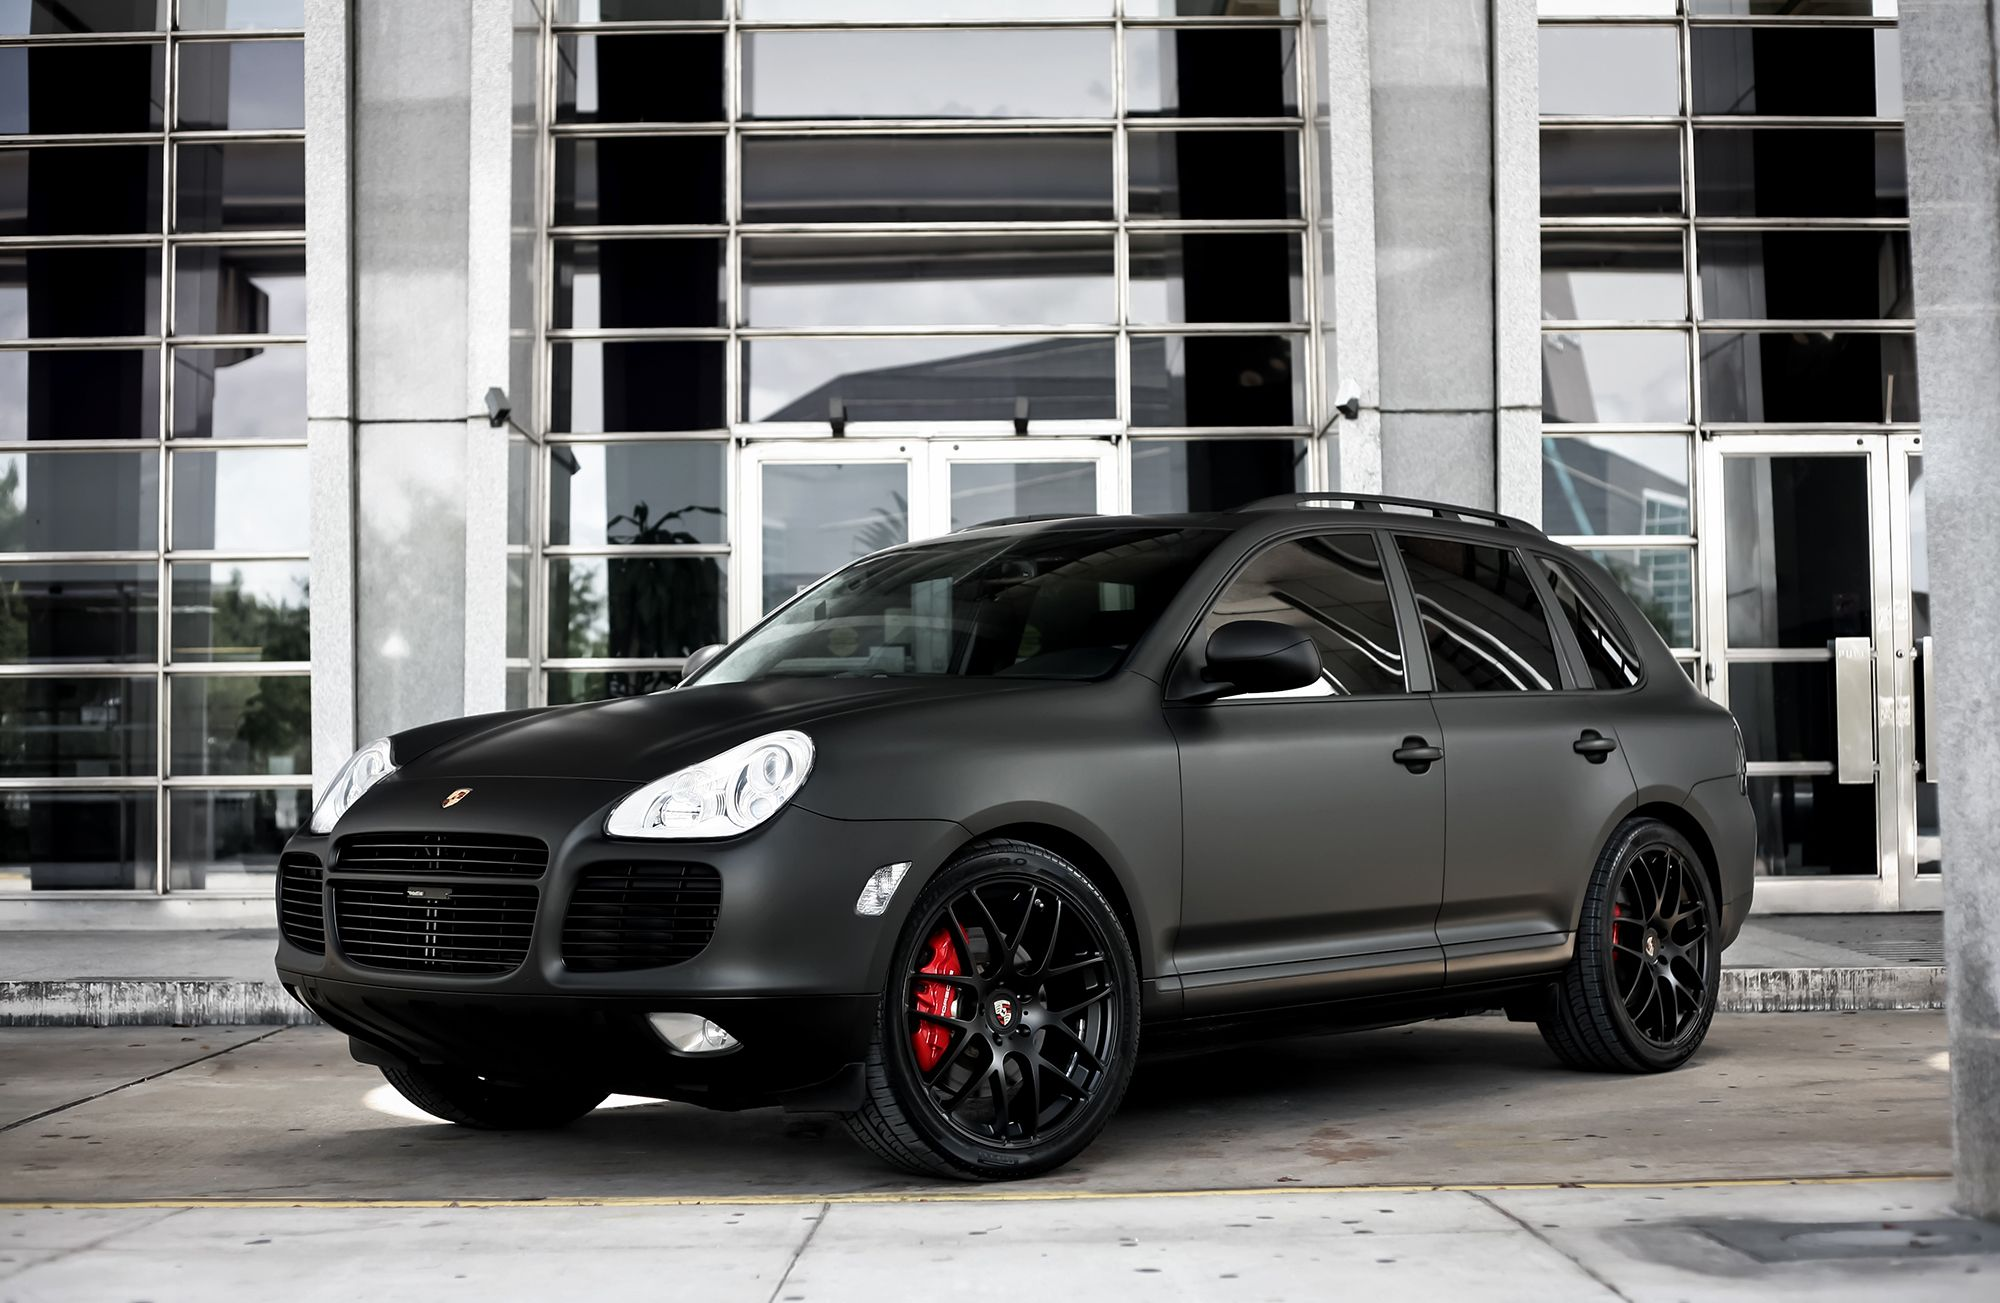 Customized Porsche Cayenne Turbo S With Full Matte Black Exterior Wrap Smoked Lights Painted